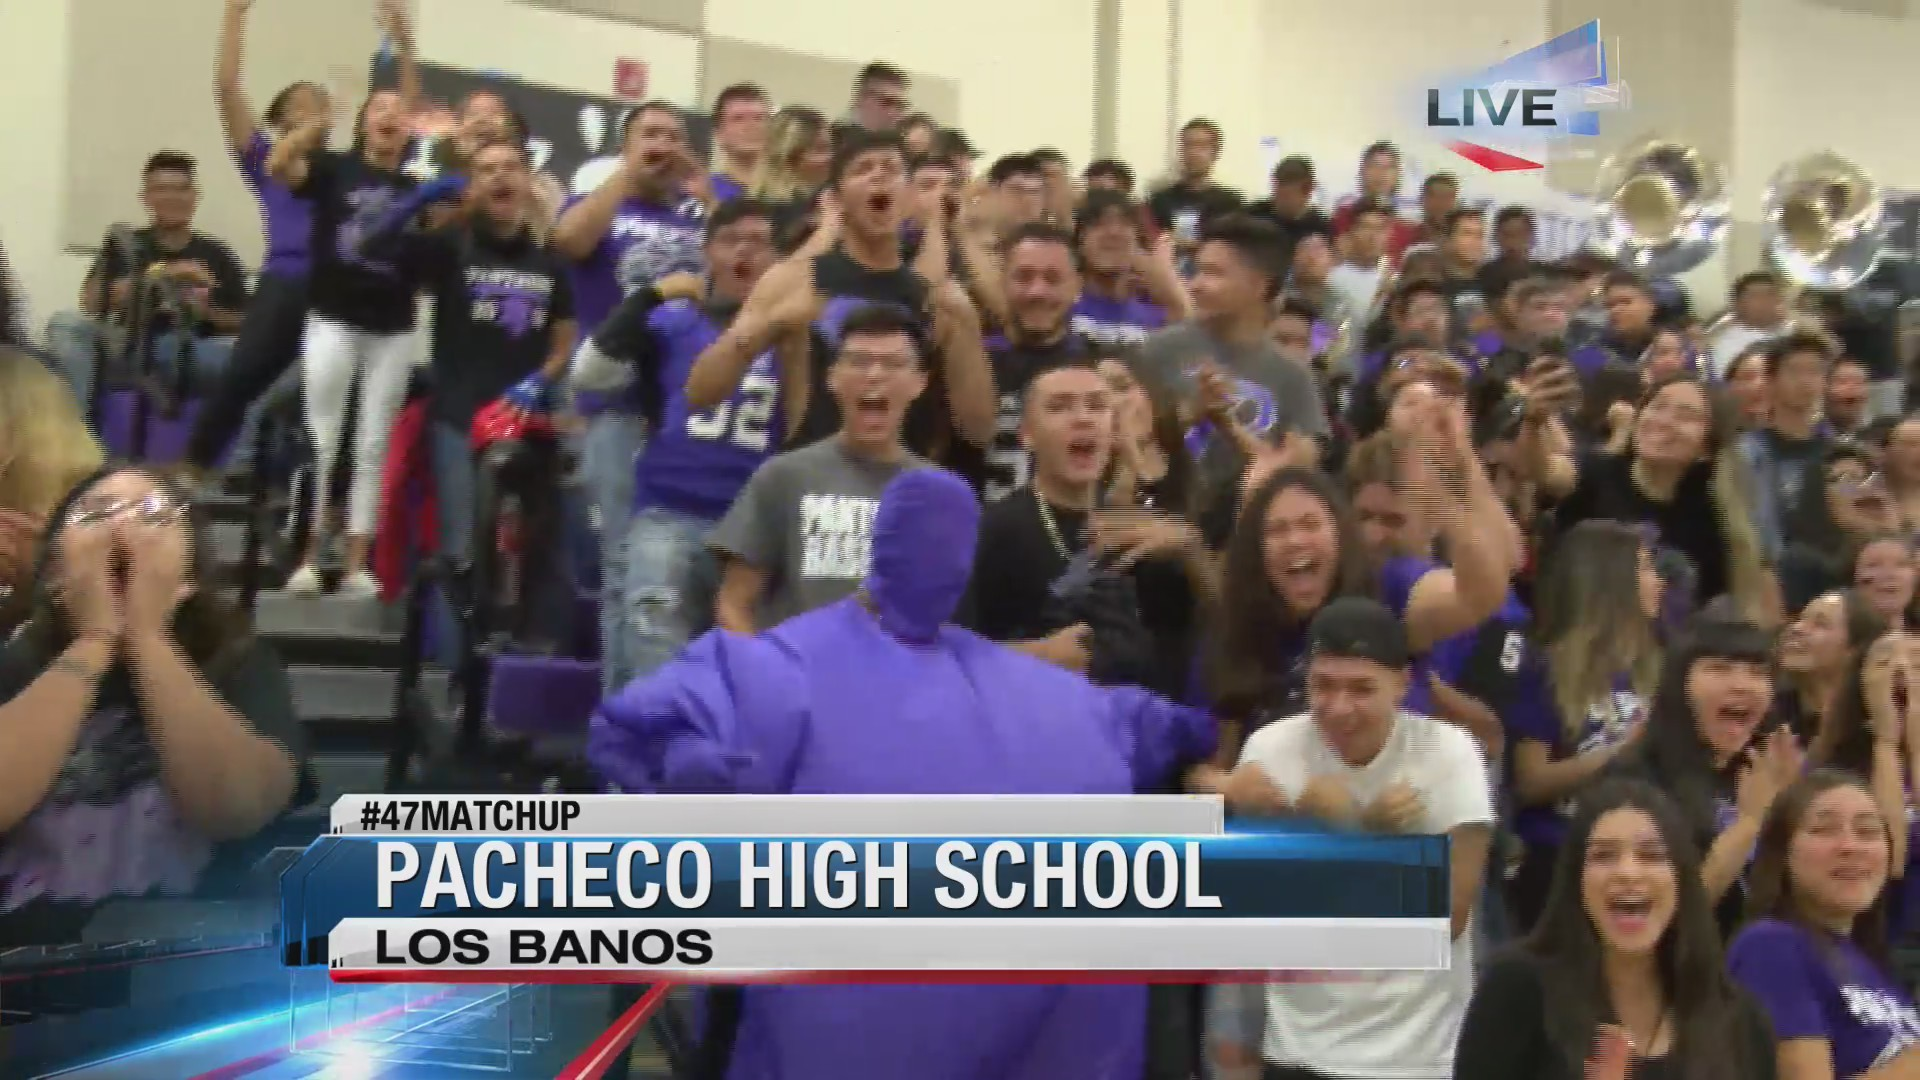 High school football preview at Pacheco high